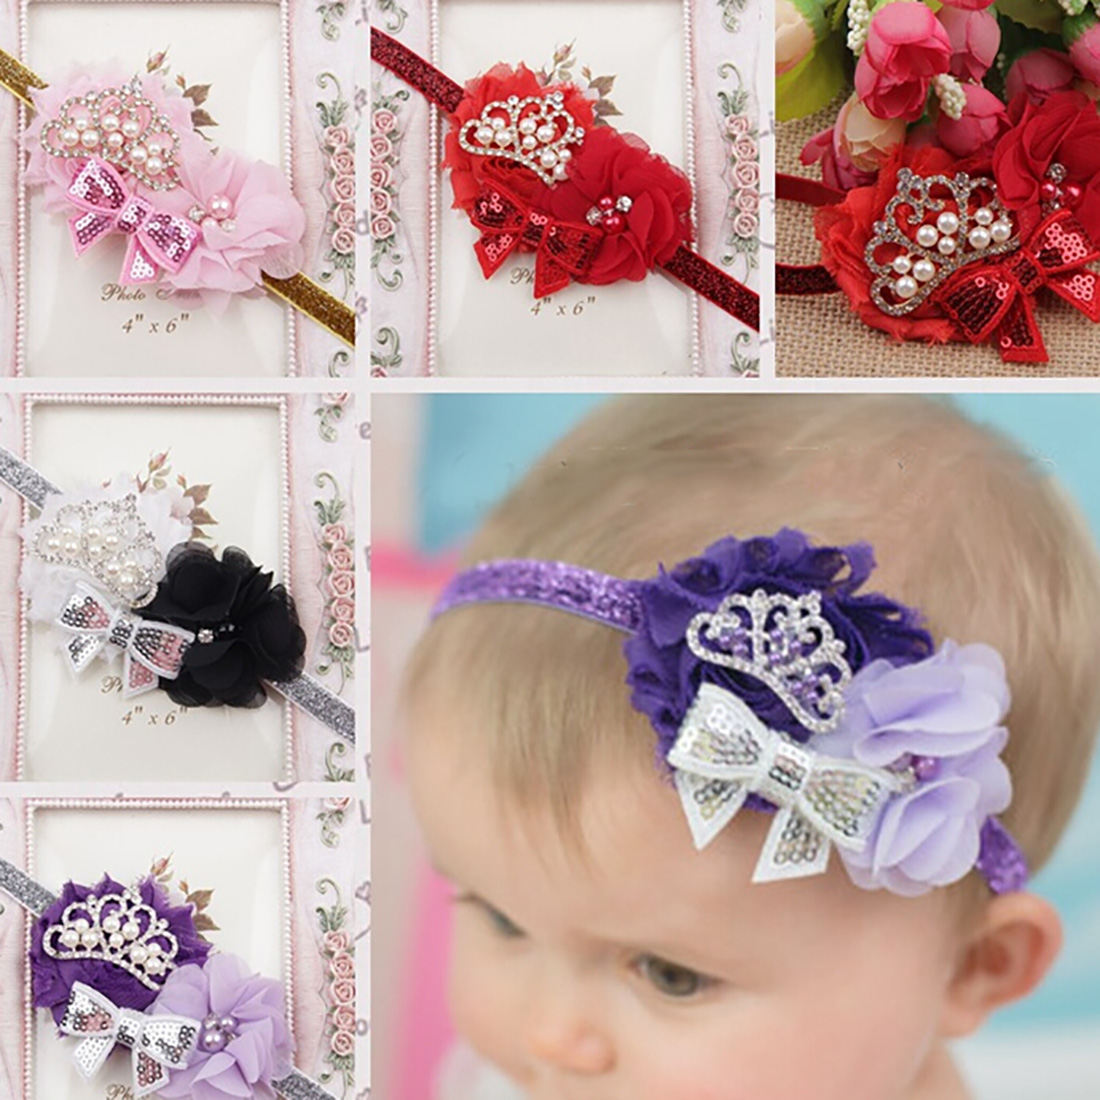 Toddler Infant Crystal Crown Flower Bowknot Headbands Baby Soft Diamond Fabric Hair Band headband for baby